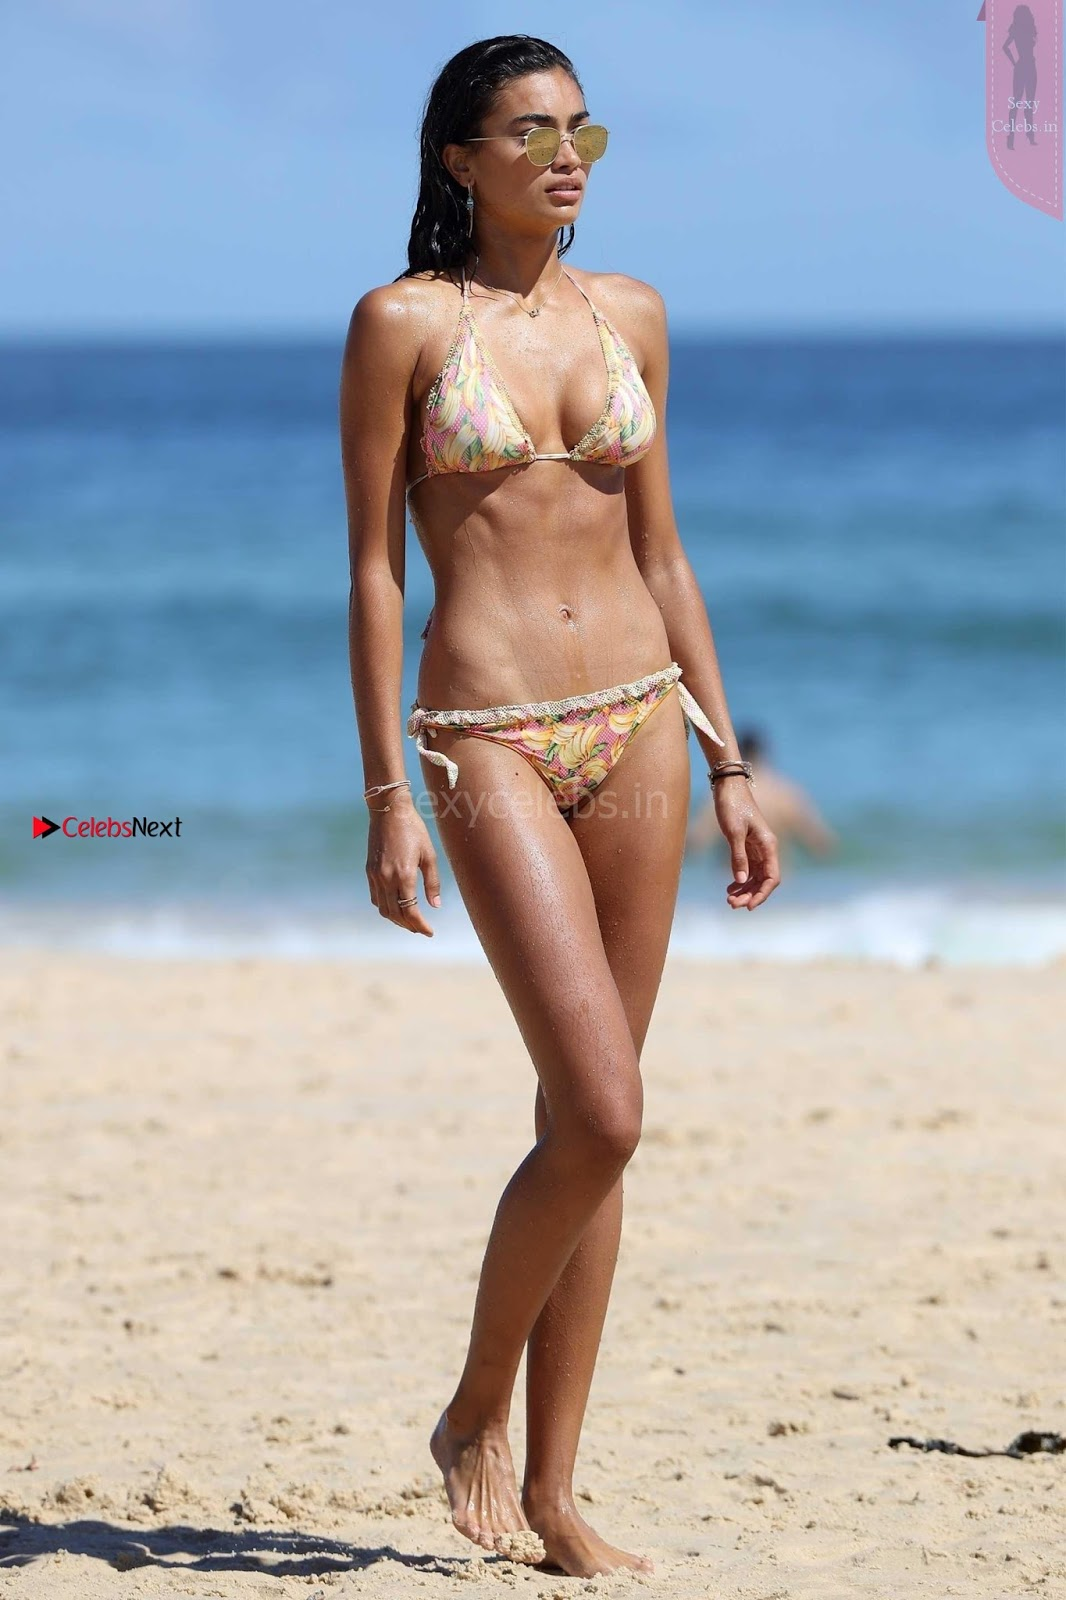 Kelly-Gale-705+in+Sexy+Bikini+Boobs+Tits+WOW+%7E+SexyCelebs.in+Exclusive.jpg